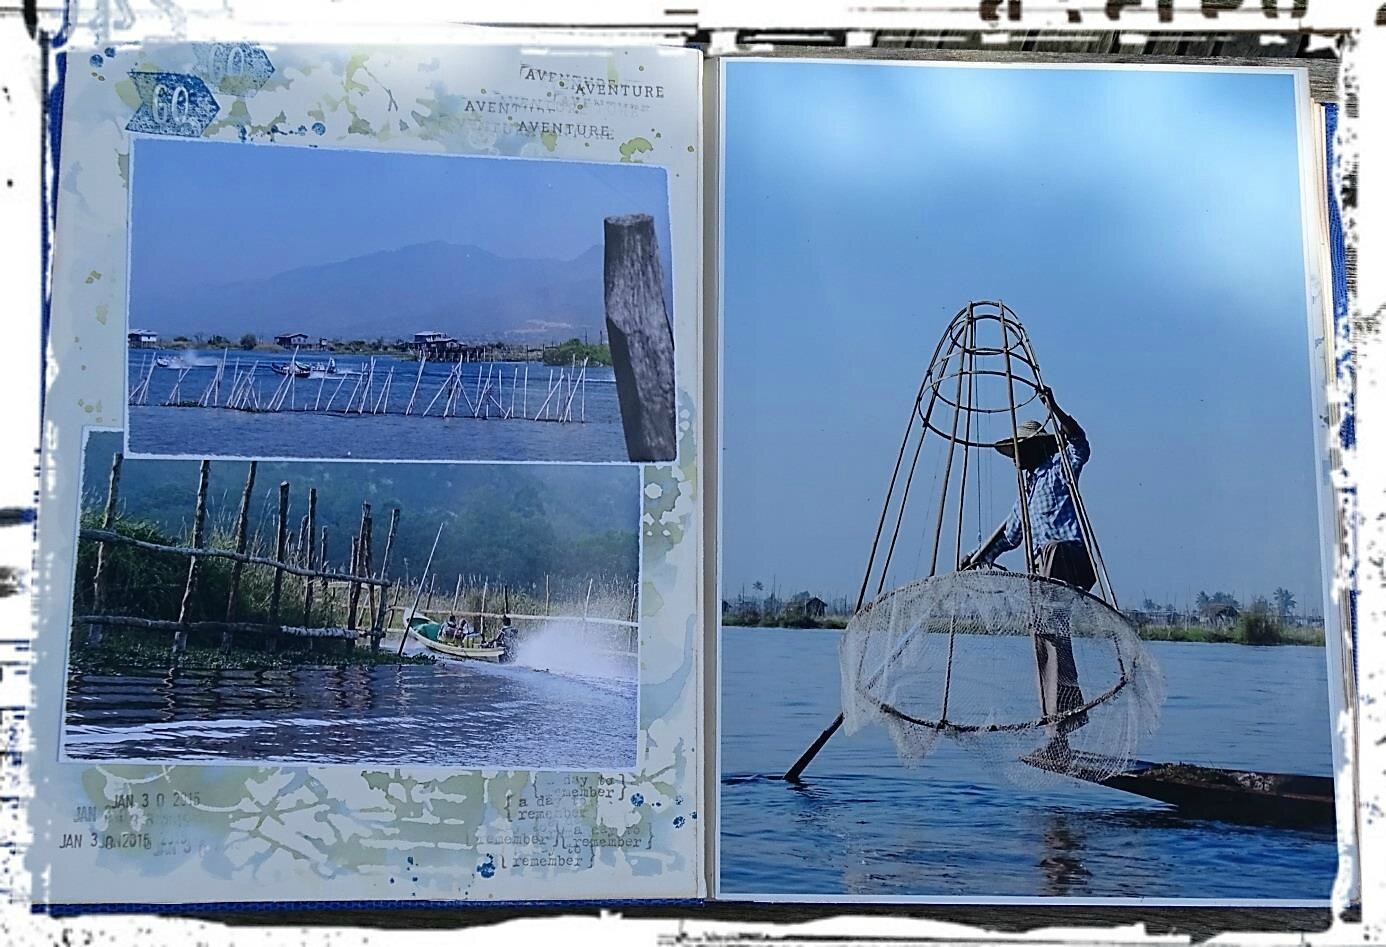 INLE2